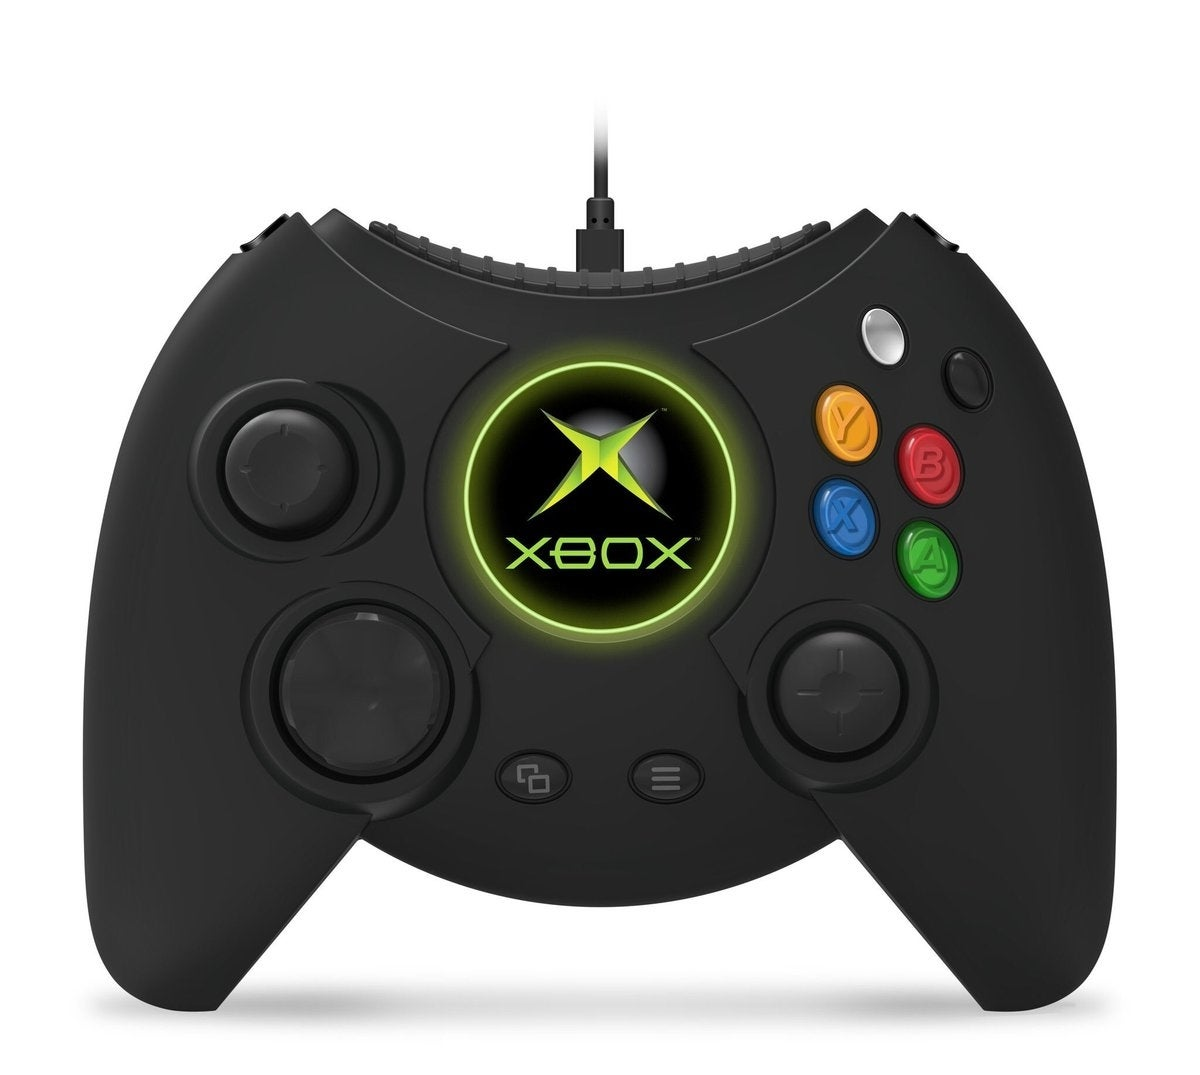 Official original Xbox Duke controller for Xbox One releasing in March